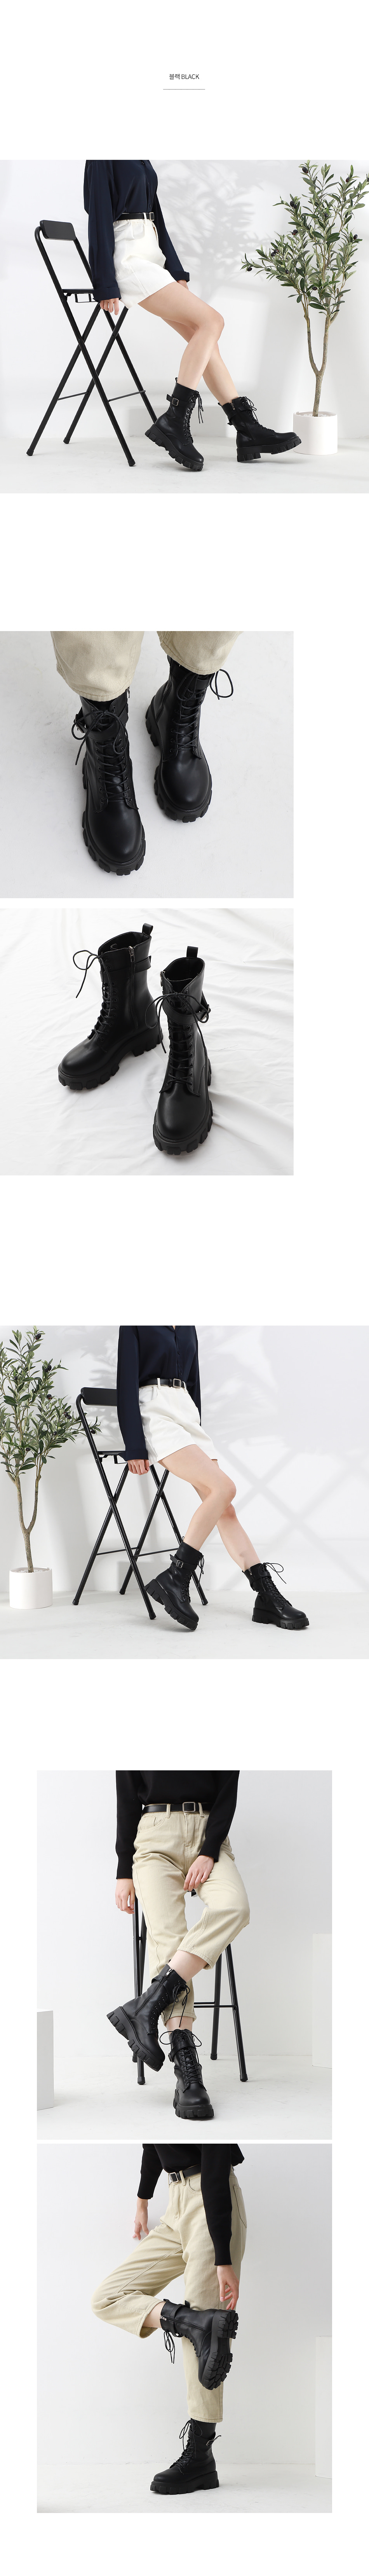 Isshu Round Heel Ankle Buckle Strap Lace-up Lightweight Full Heel Walker Boots 10821 ♡ 1st Edition ♡